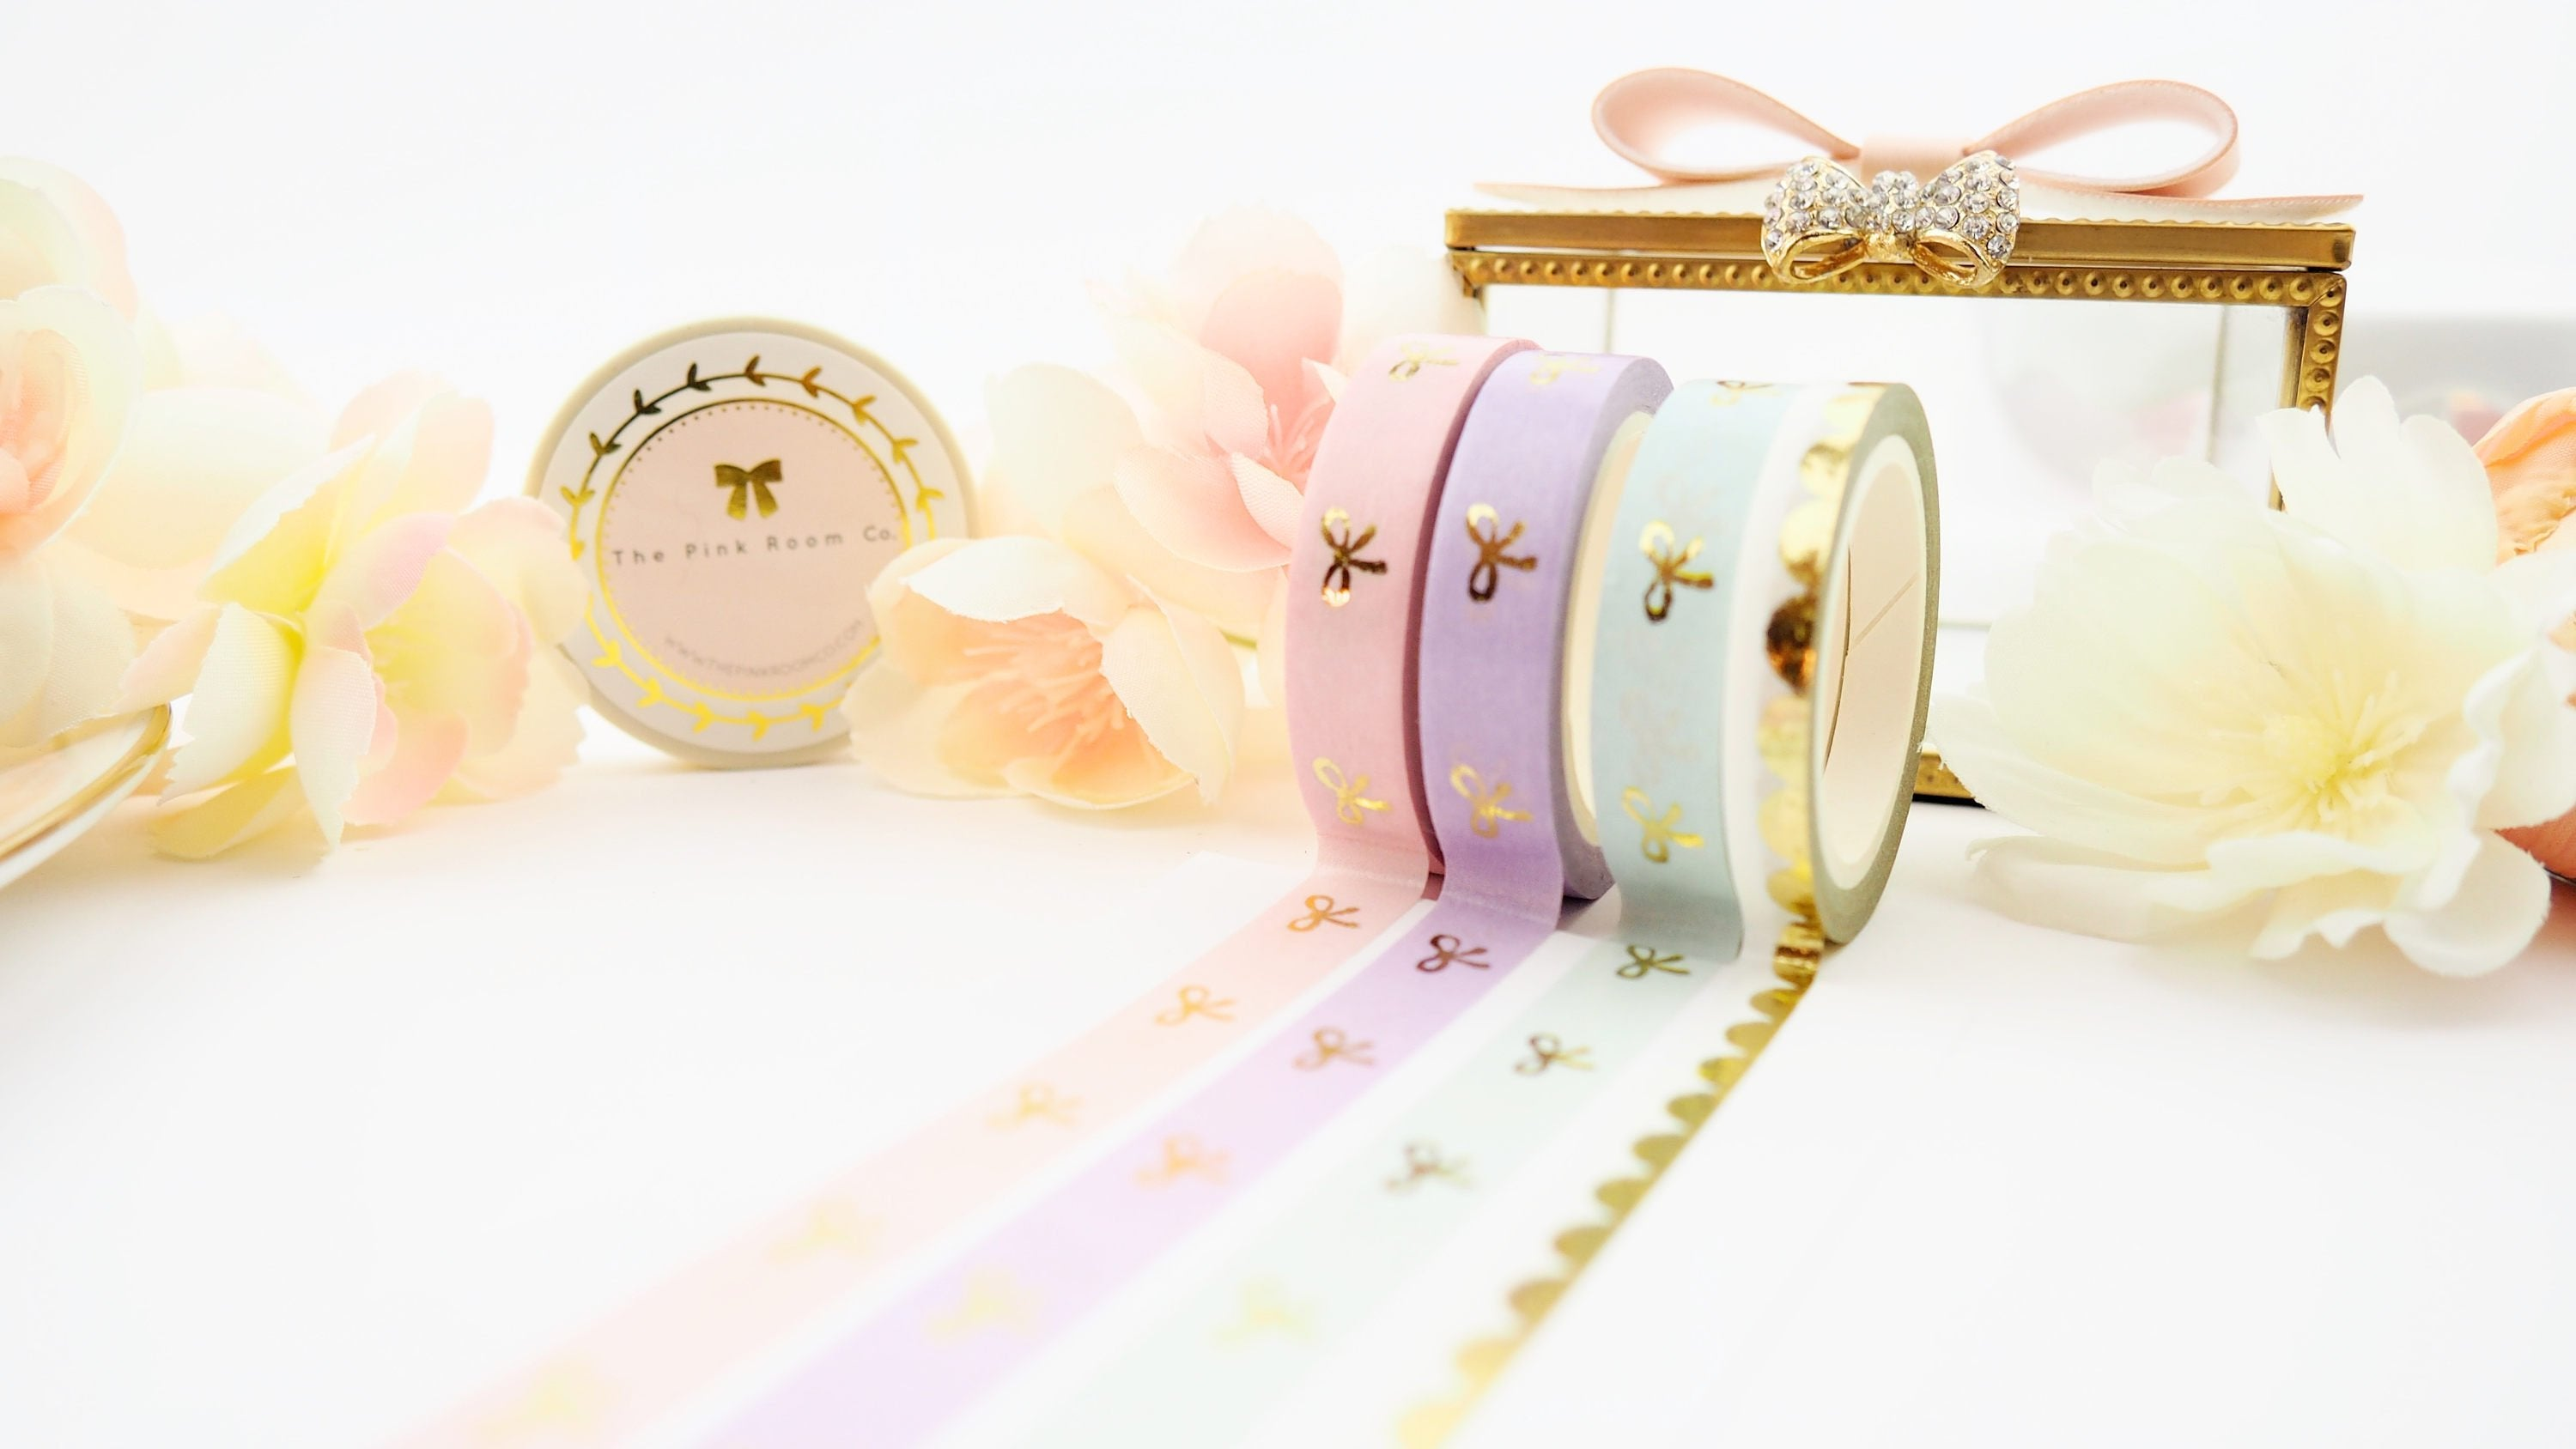 Gold Scallop Vintage Style Washi Tape - The Pink Room Co Original